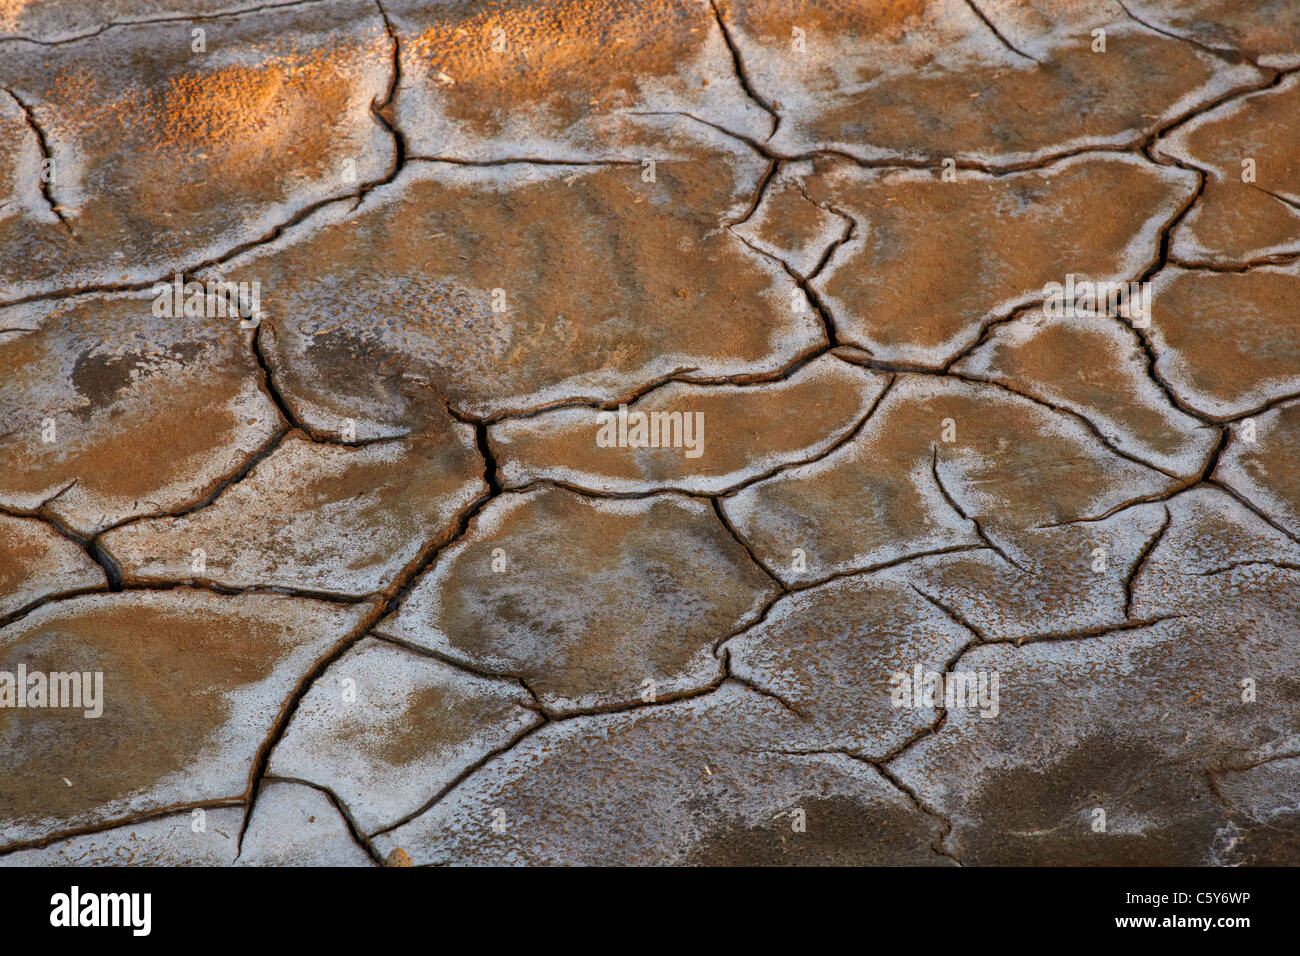 Salt deposit in a cracked soil, Northern Sudan,  Africa - Stock Image